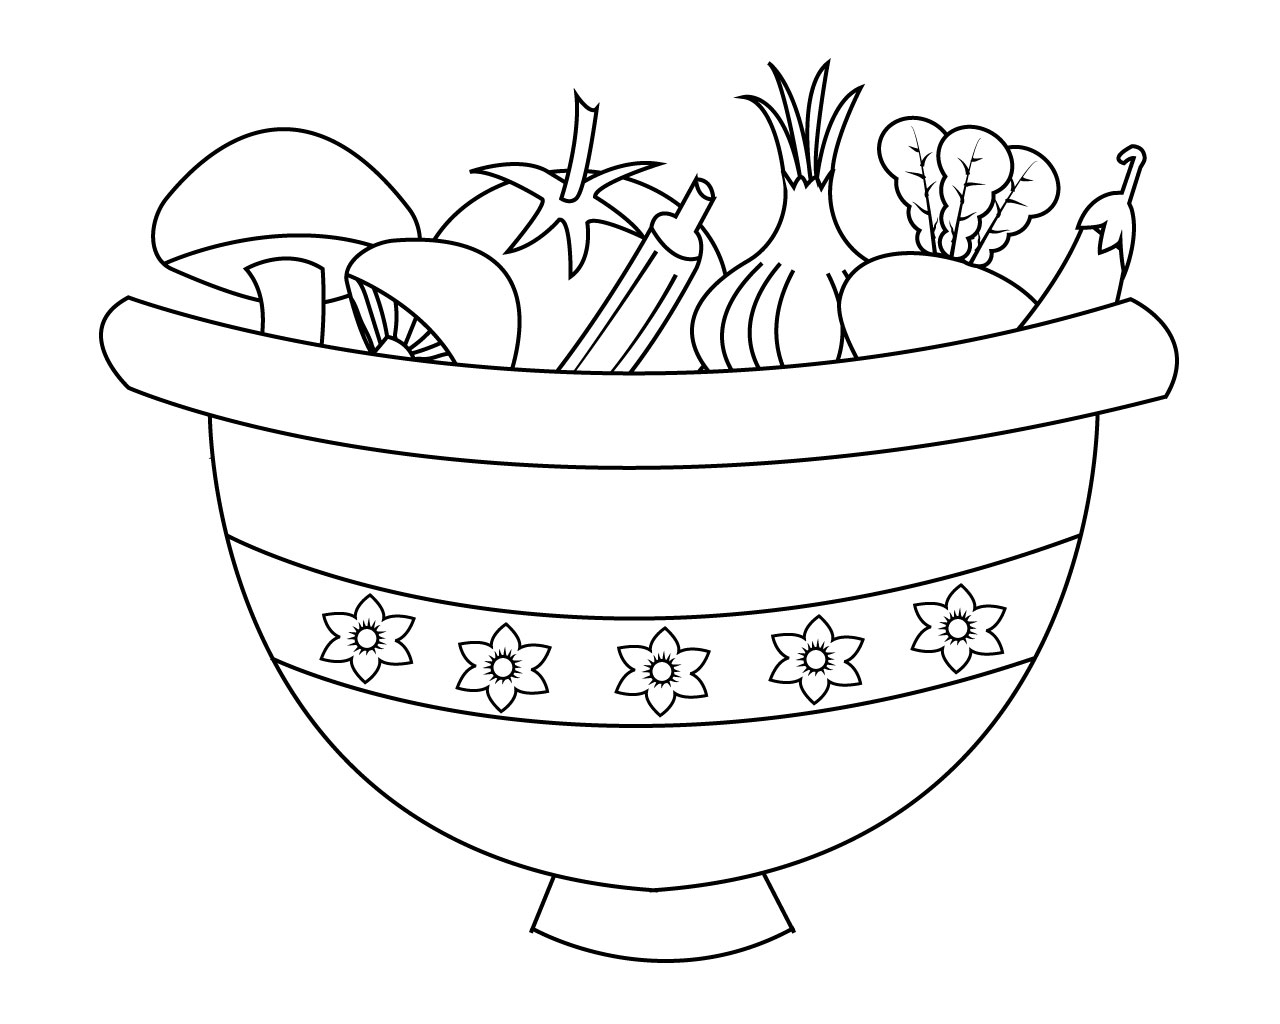 vegetables coloring sheets vegetable coloring pages best coloring pages for kids coloring vegetables sheets